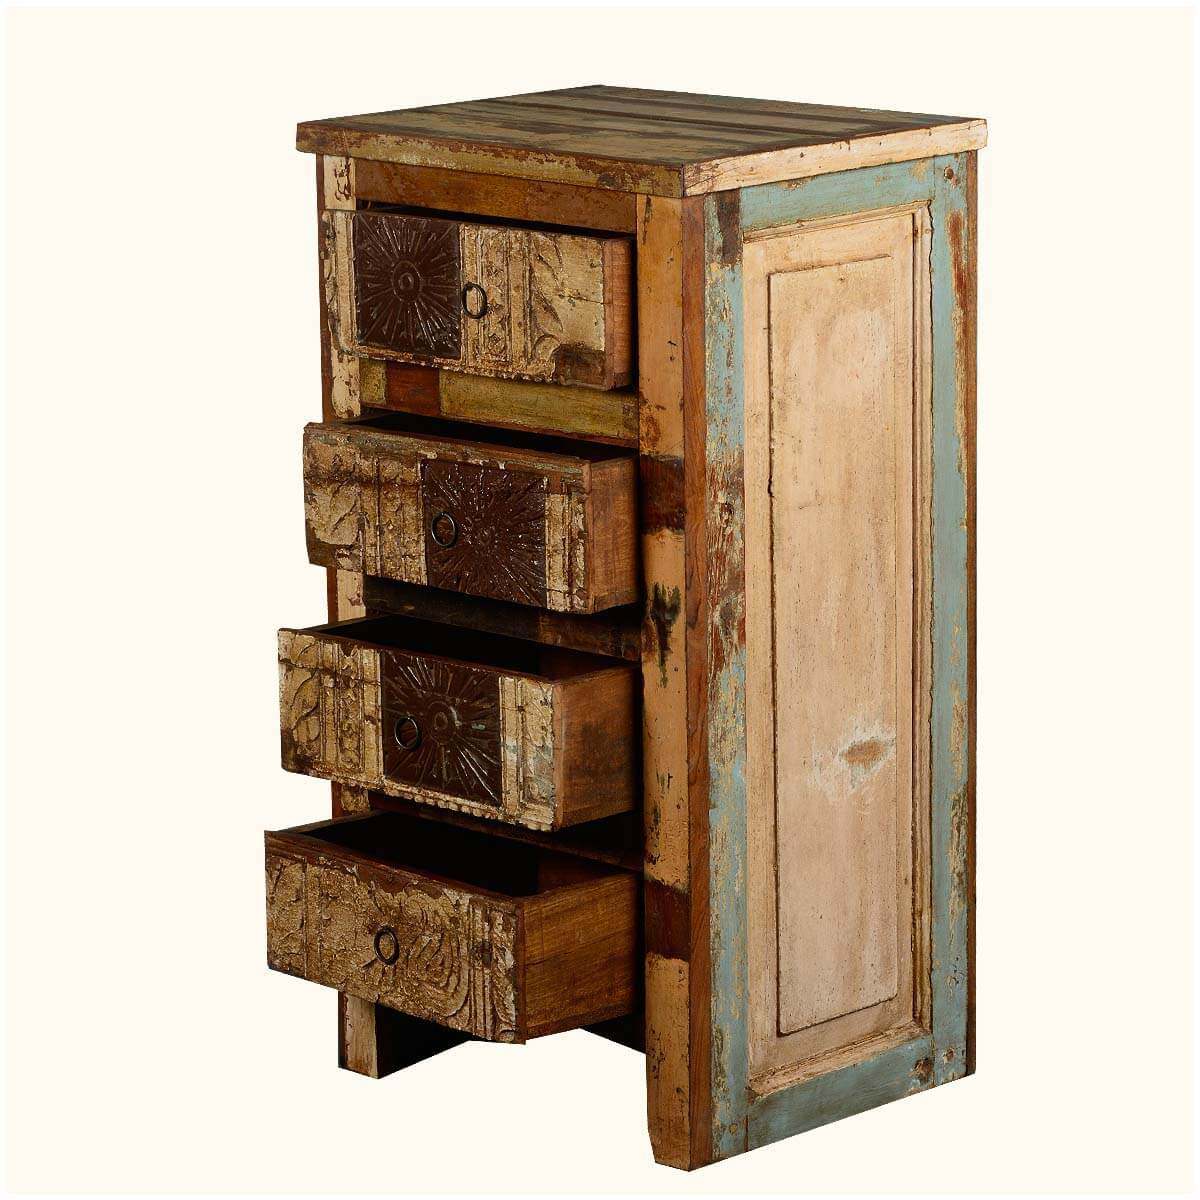 Wooden Patch Quilt Night Stand End Table Reclaimed Wood